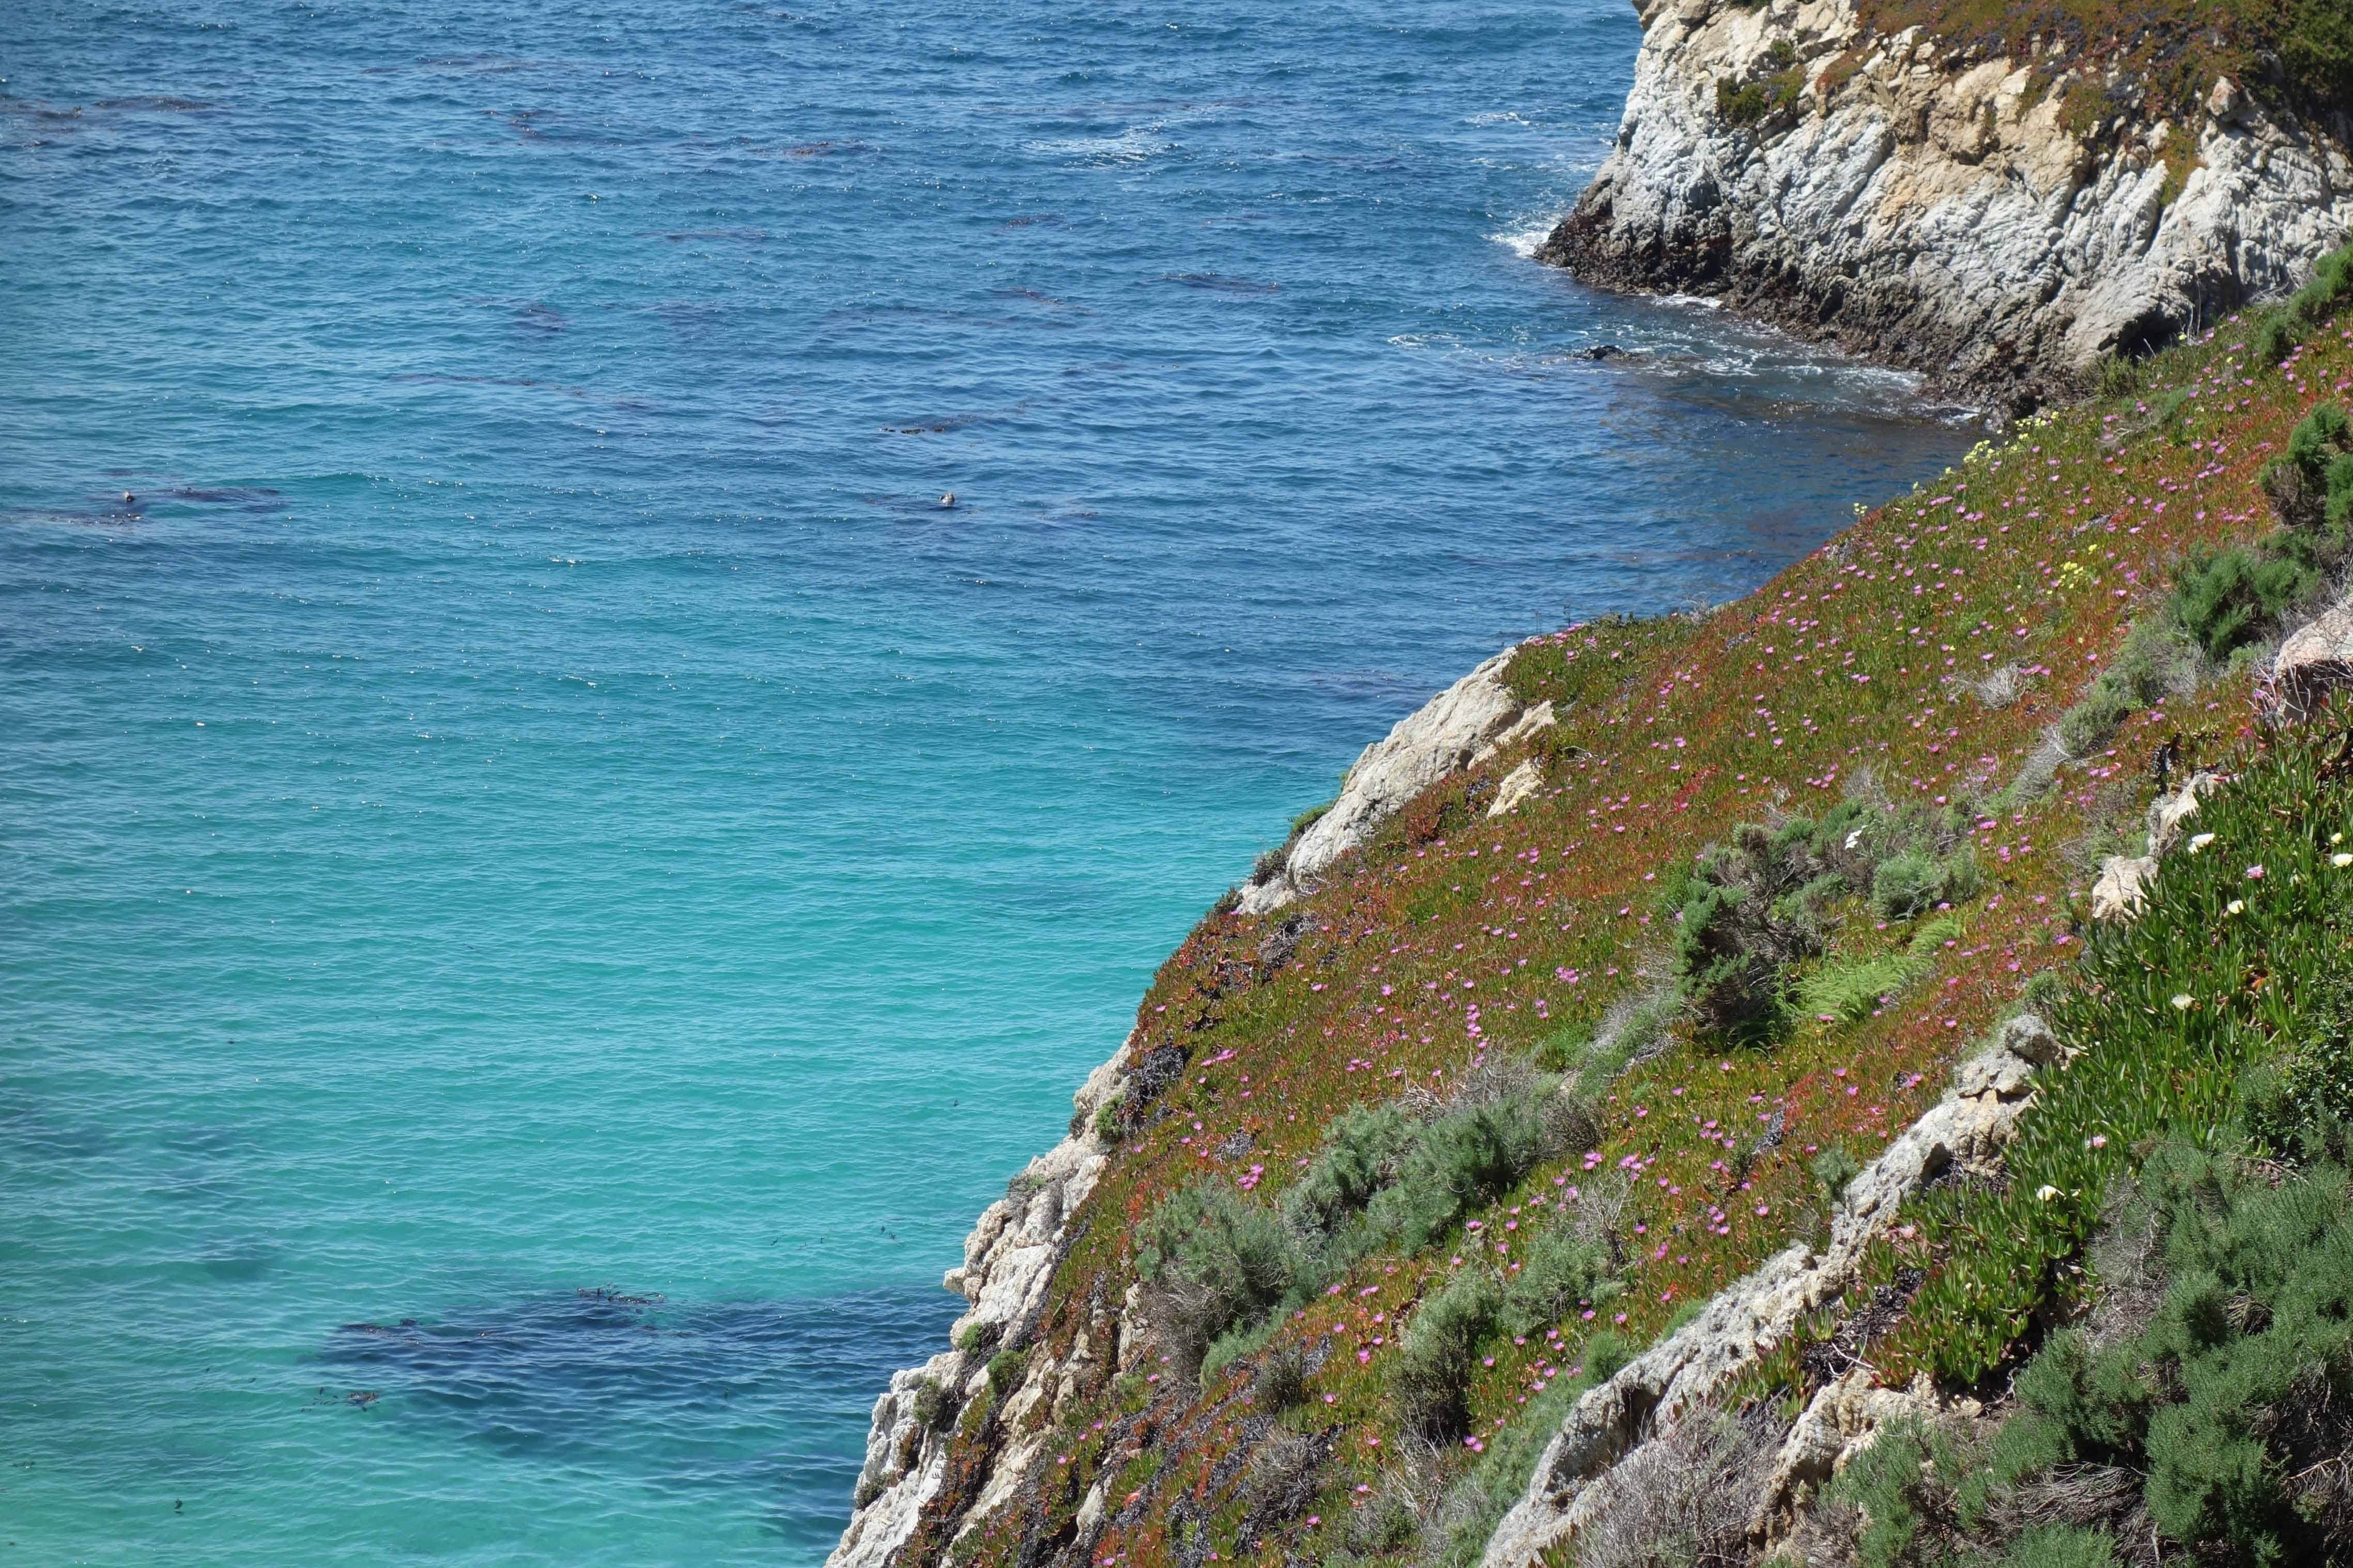 Wild Flower meet the Pacific Ocean Photo Credit: Evelyn Calhoon/M-A Chronicle